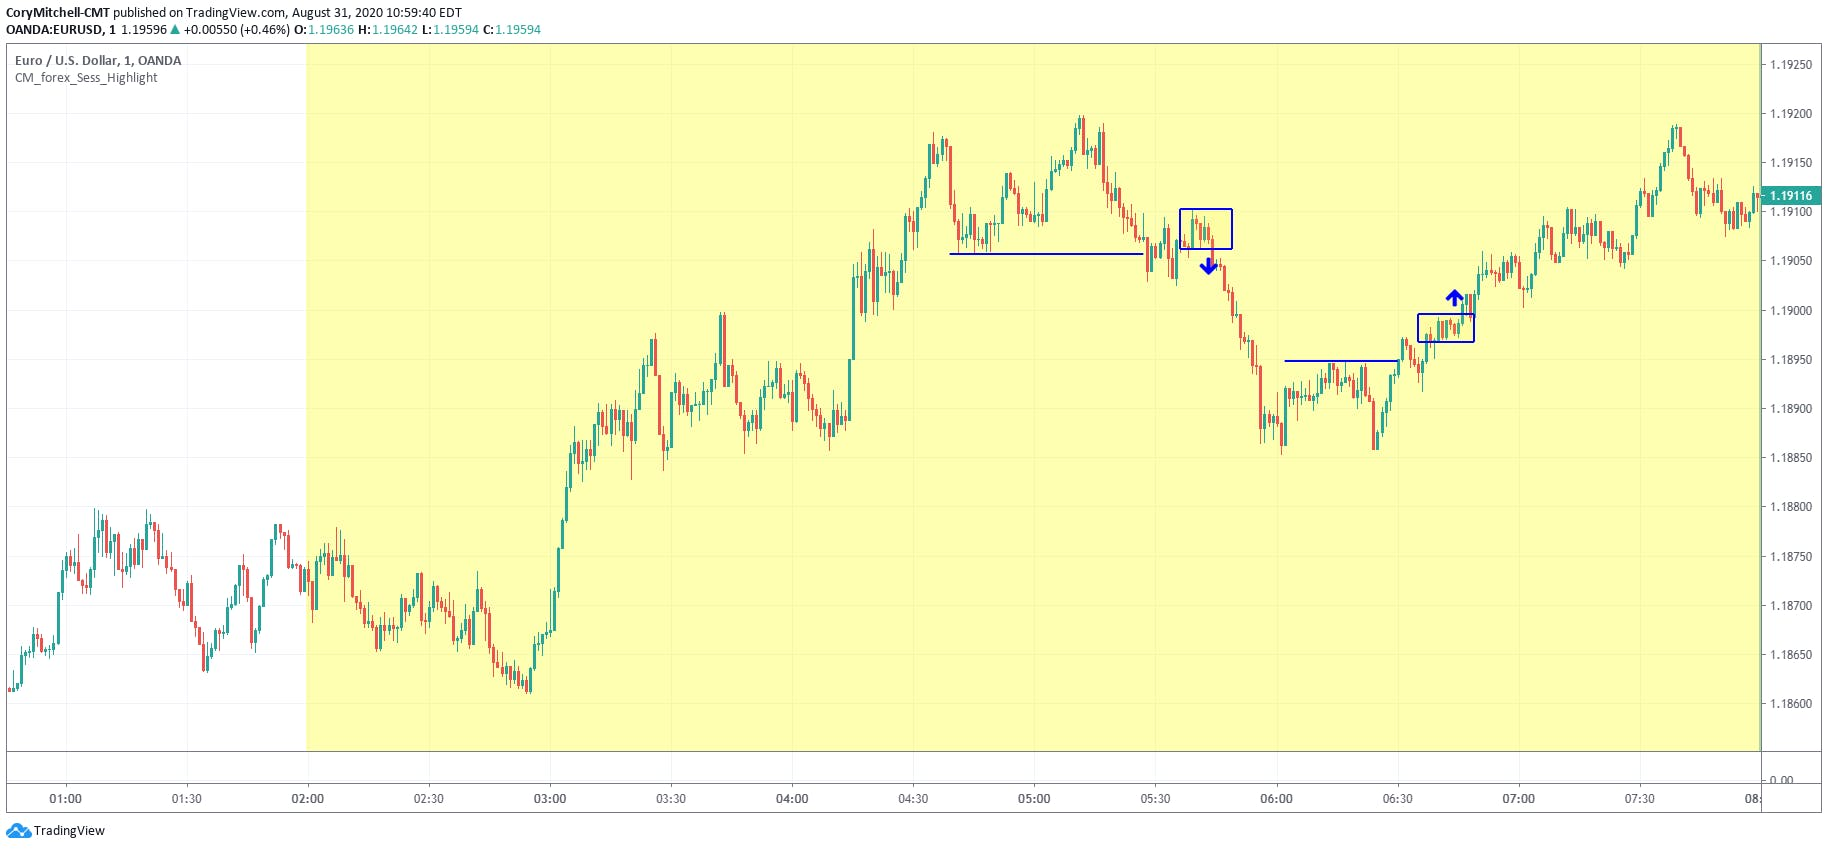 EURUSD 1-minute technical turnaround strategy